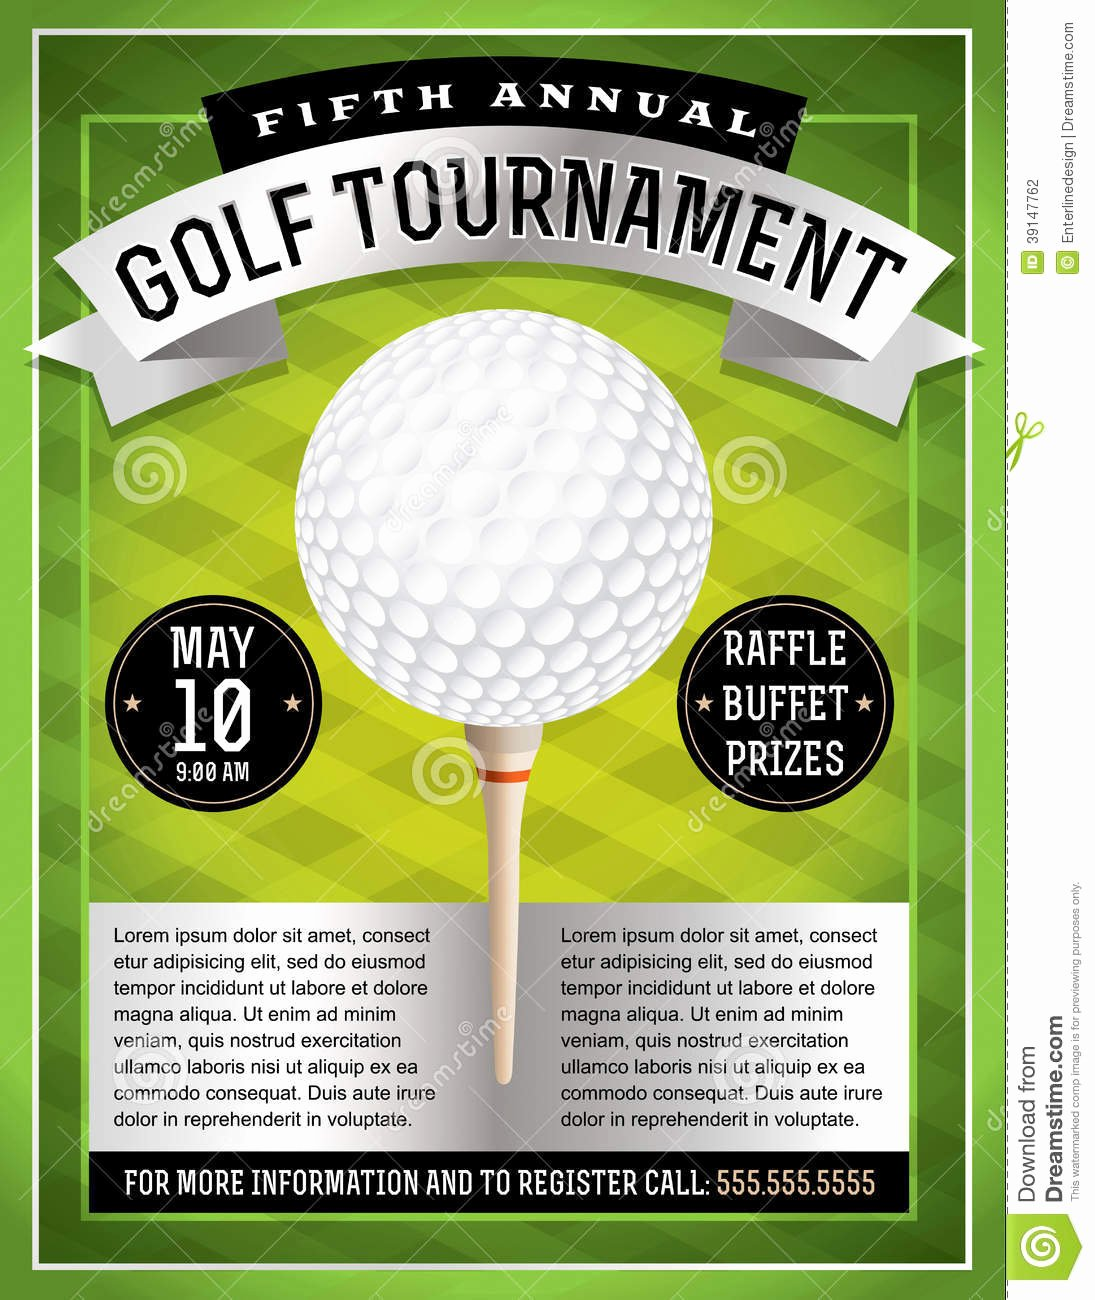 Golf tournament Flyer Template New Golf tournament Flyer Stock Vector Illustration Of